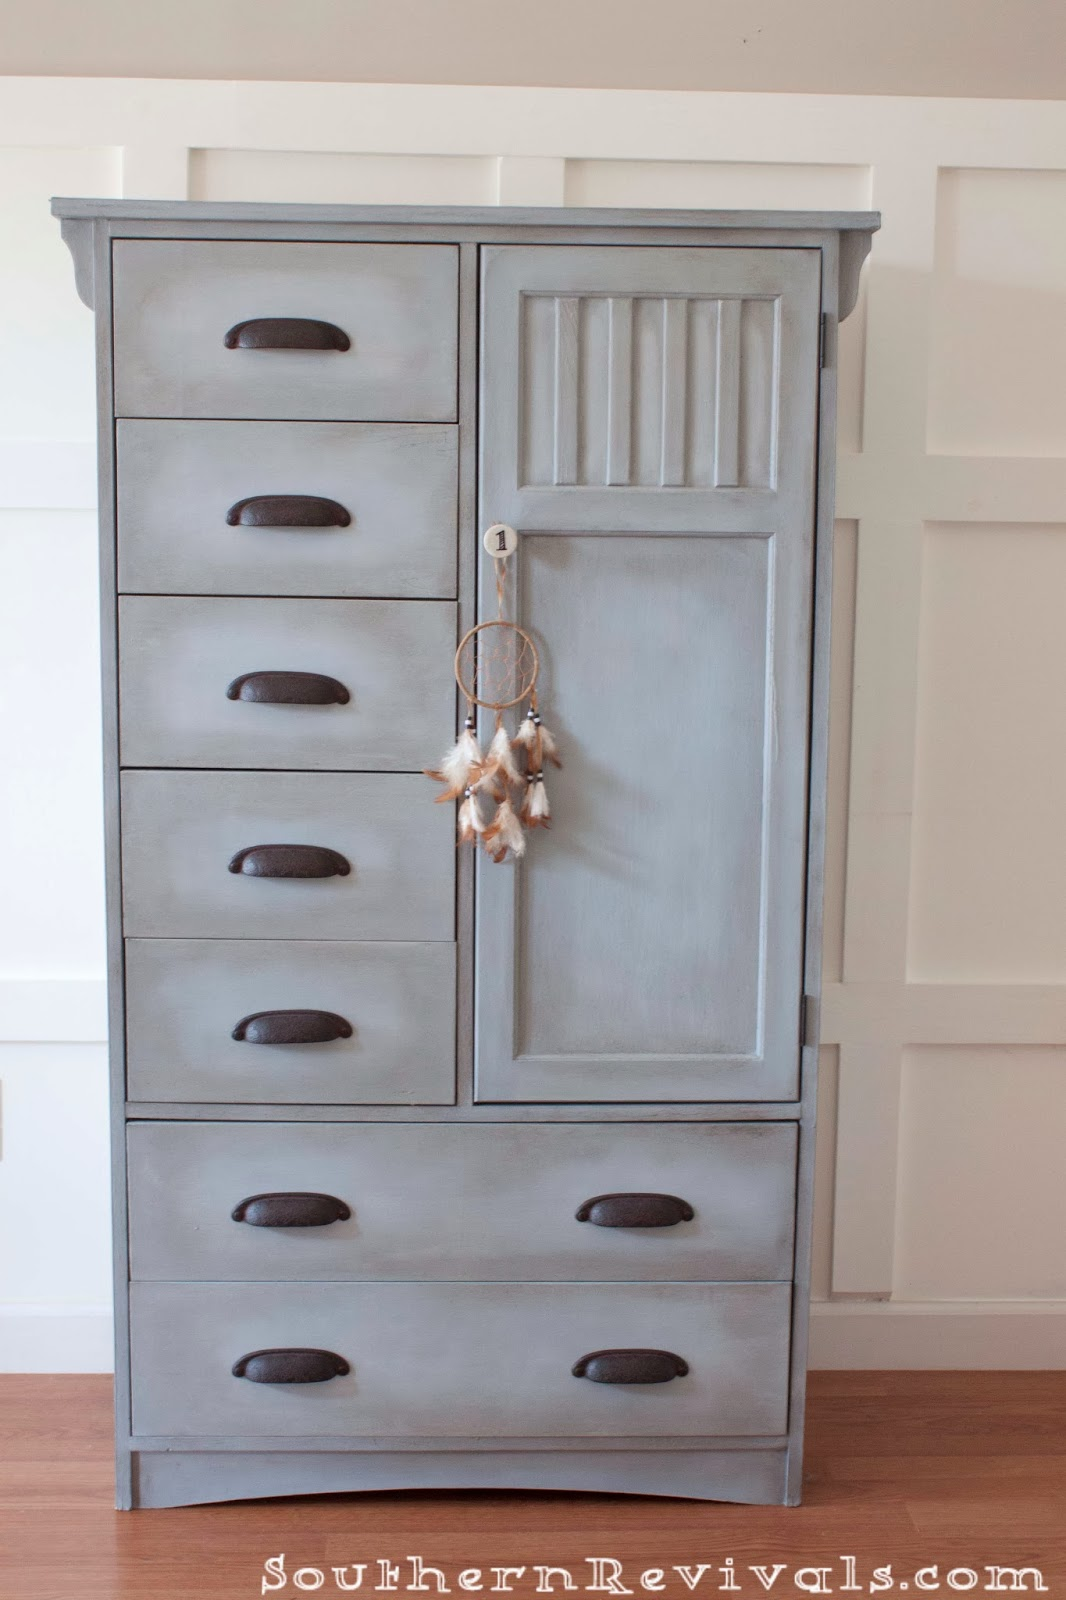 A Wardrobe Chest Of Drawers Furniture Makeover Southern Revivals